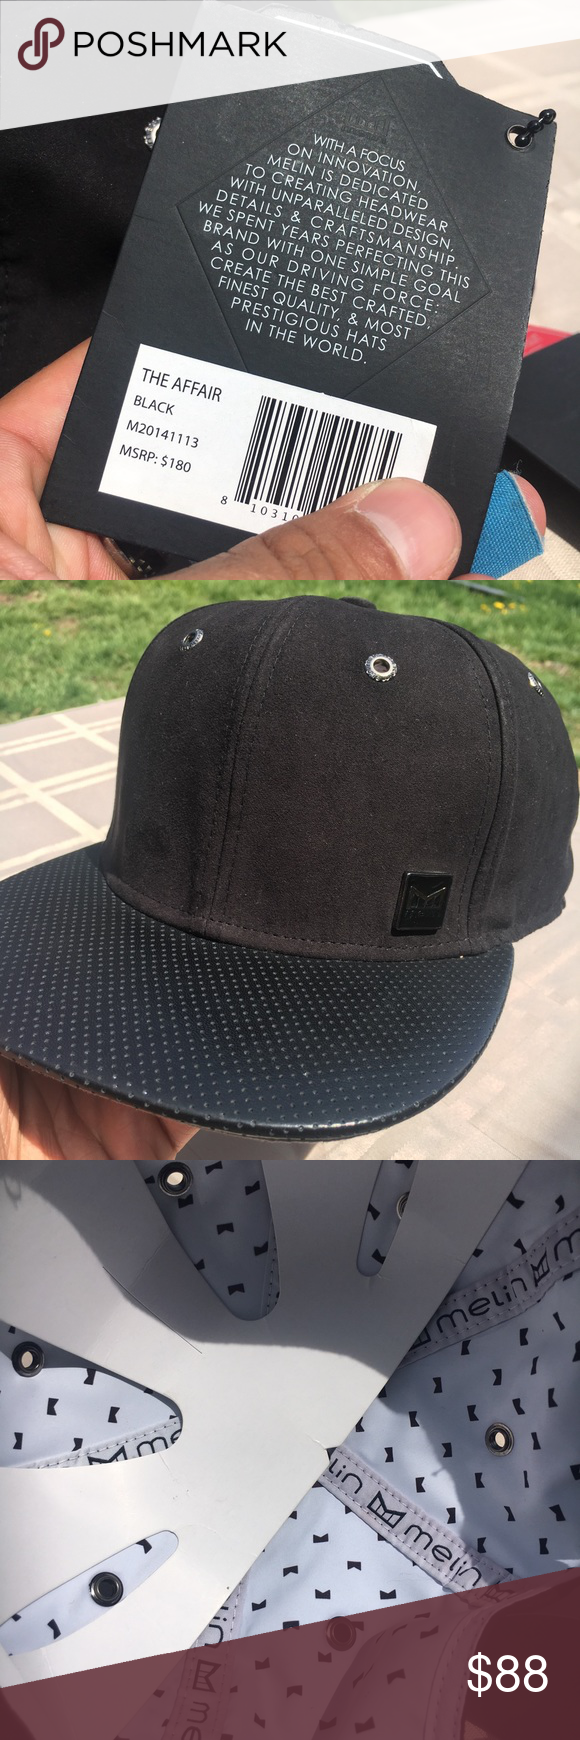 sports shoes a1349 e6547  1 Luxury Hat Brand - Affair Secret Packeted Brand New Black Suede and Napa  Leather Melin Brand Hat, new with tags and comes with all the information  about ...